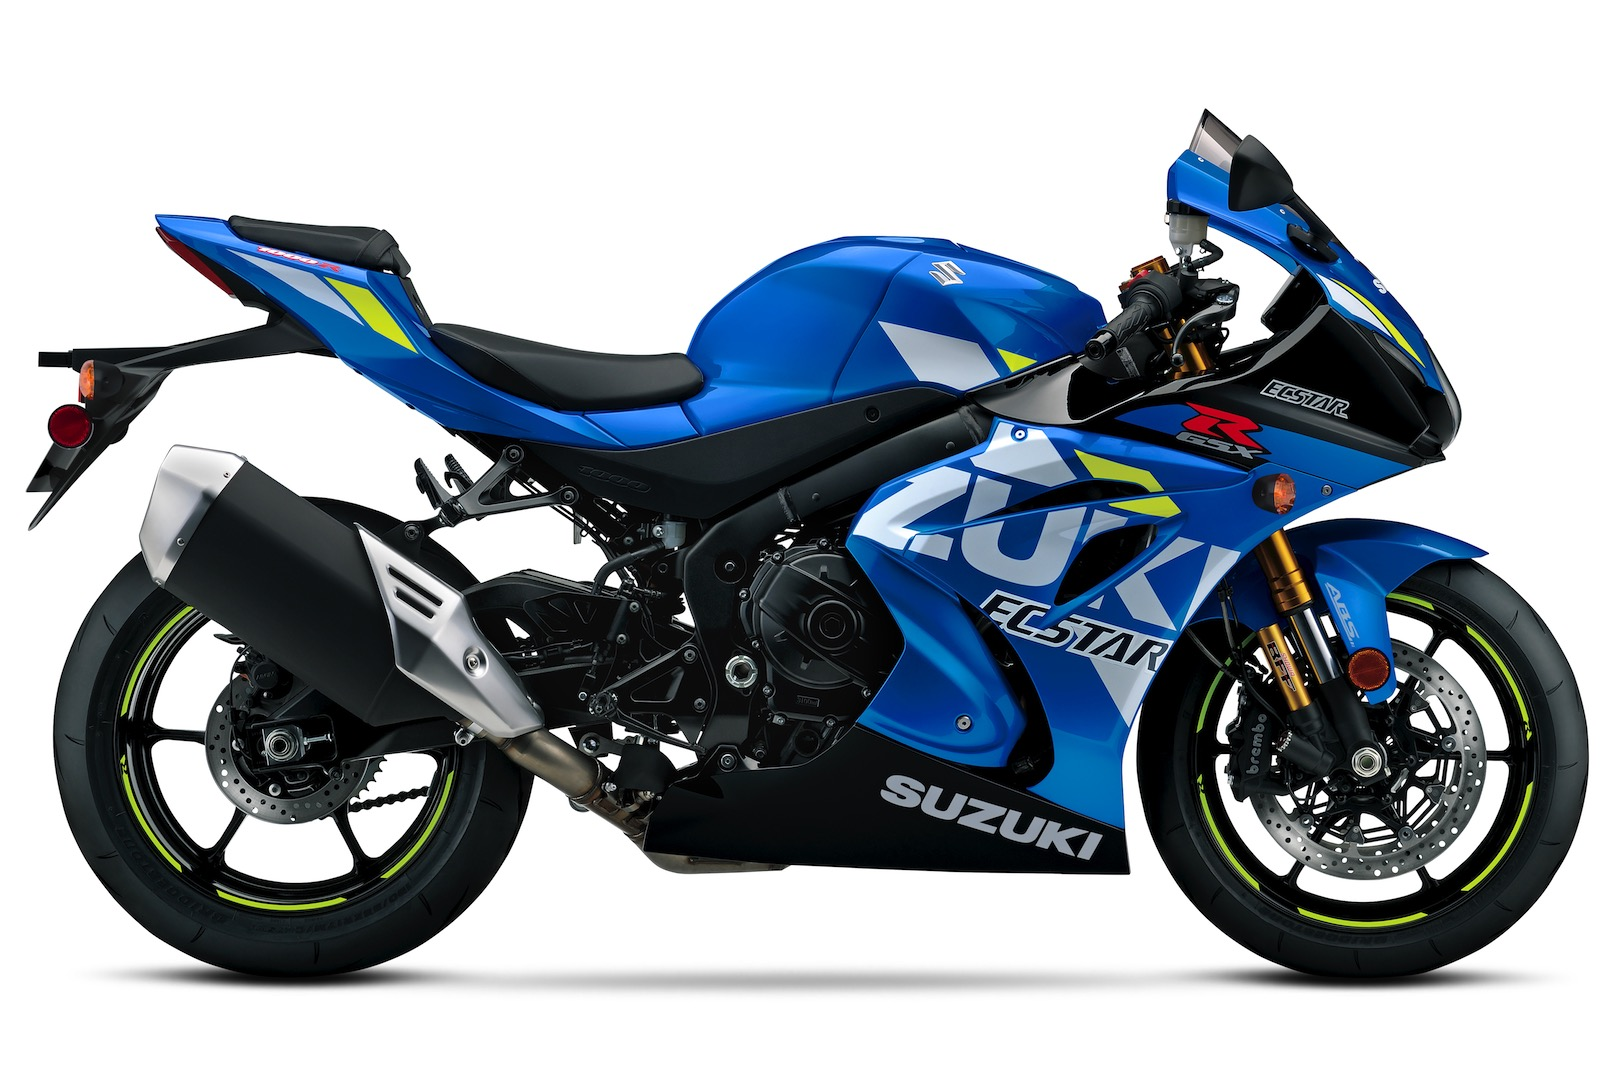 2019 Suzuki GSX-R1000R First Look (5 Fast Facts)